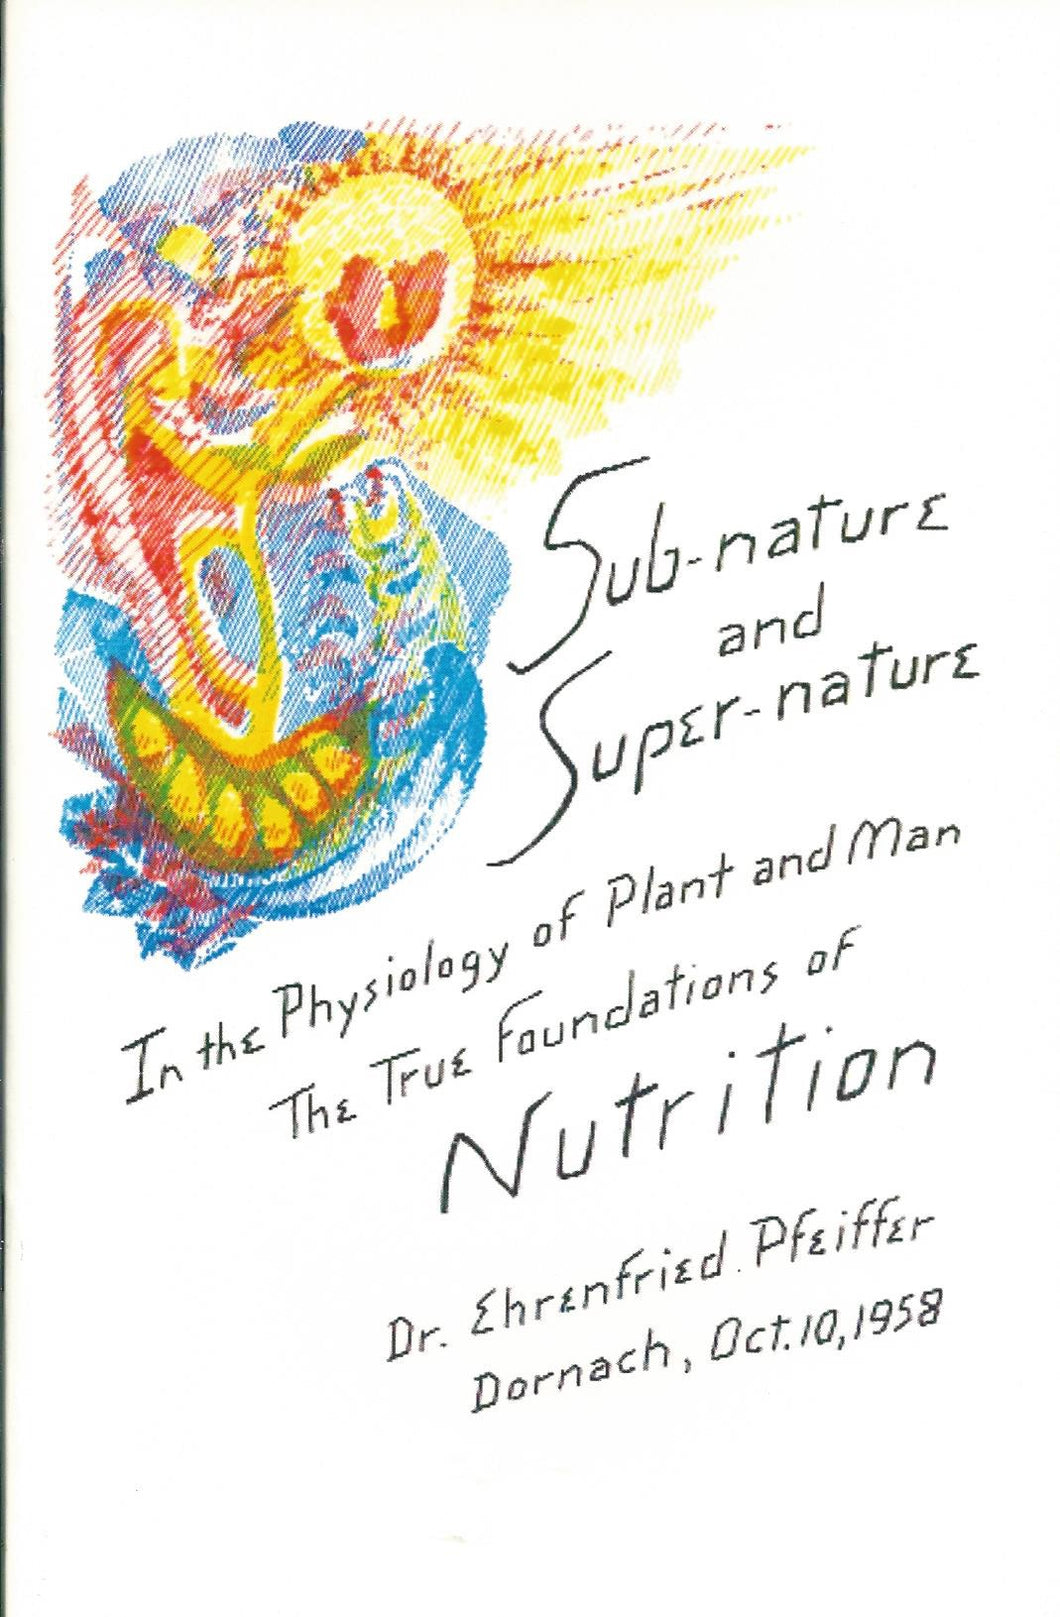 Sub-Nature and Super-Nature in the Physiology of Plant and Man: The True Foundations of Nutrition - A Lecture by Ehrenfried Pfeiffer